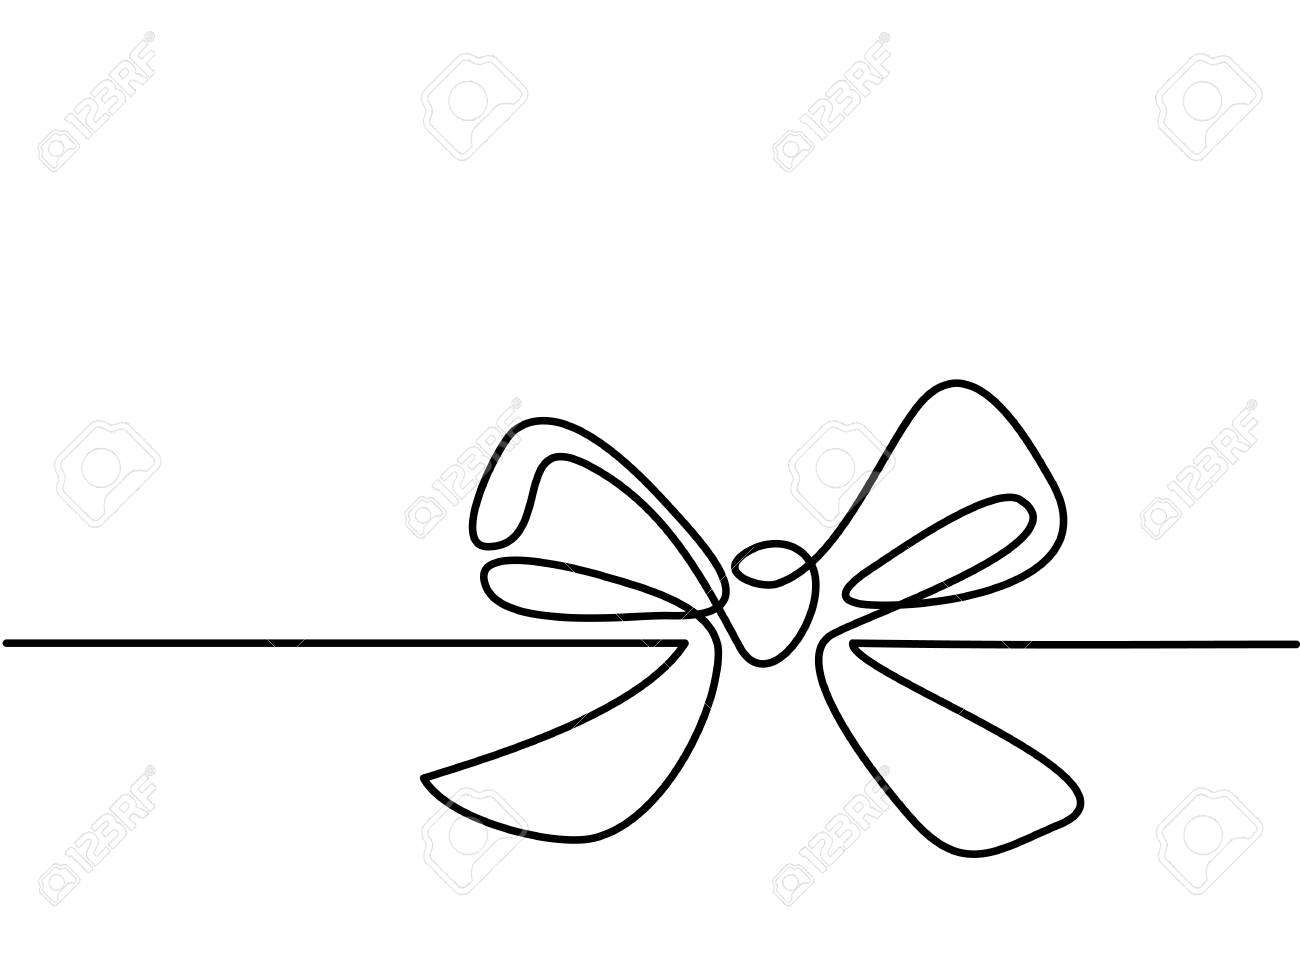 1300x973 Christmas Holly Decoration Bow Knot. Continuous Line Drawing